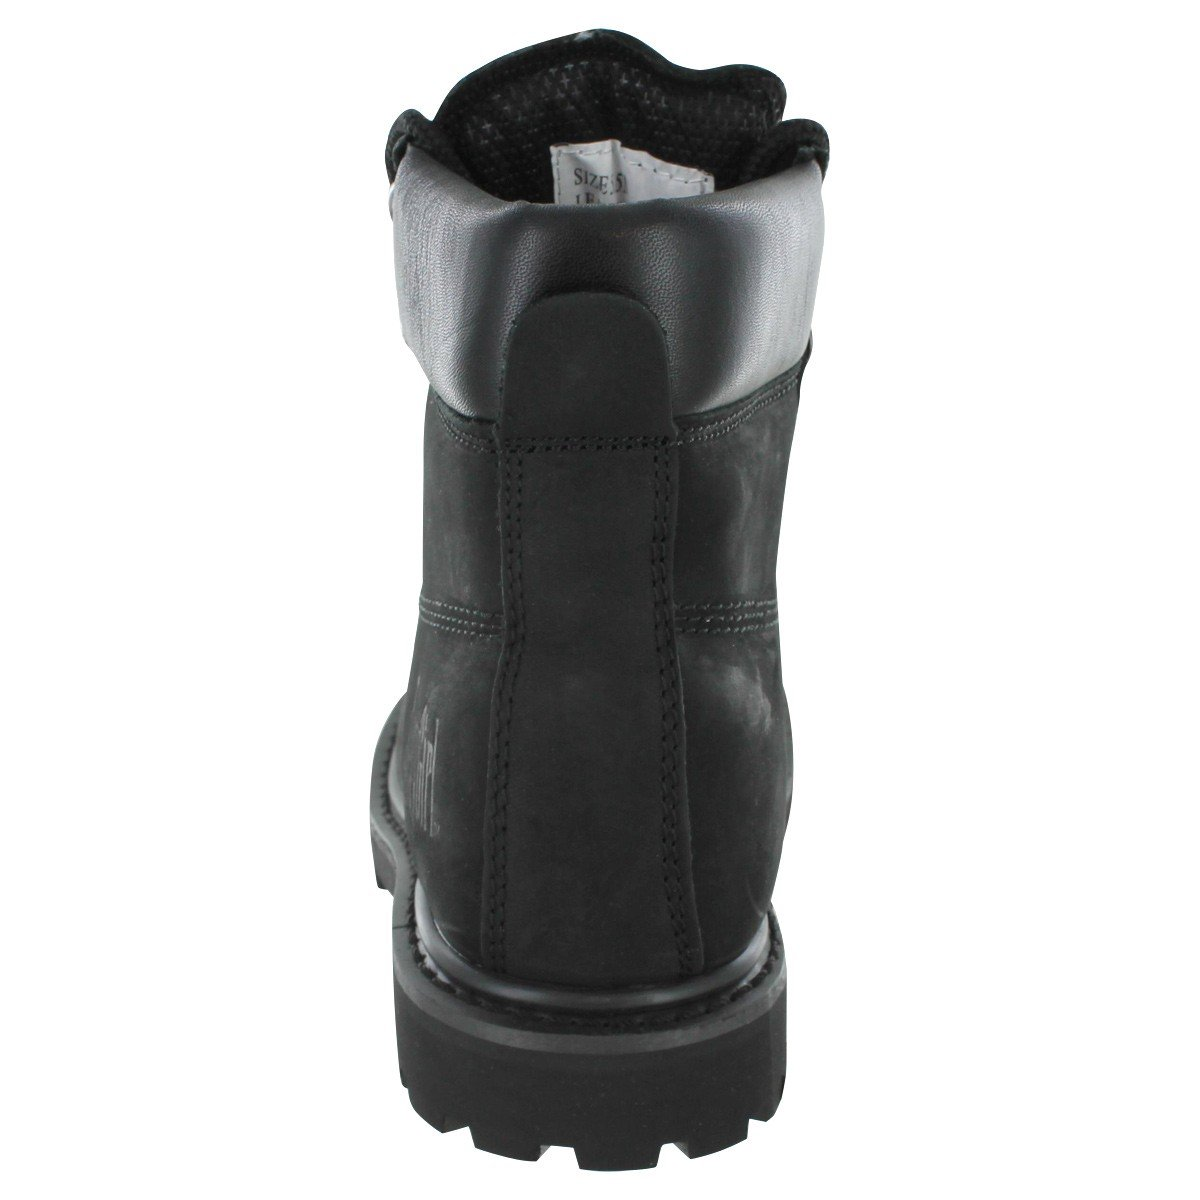 Safety Girl II Steel Toe Work Boots - Black by Safety Girl (Image #3)